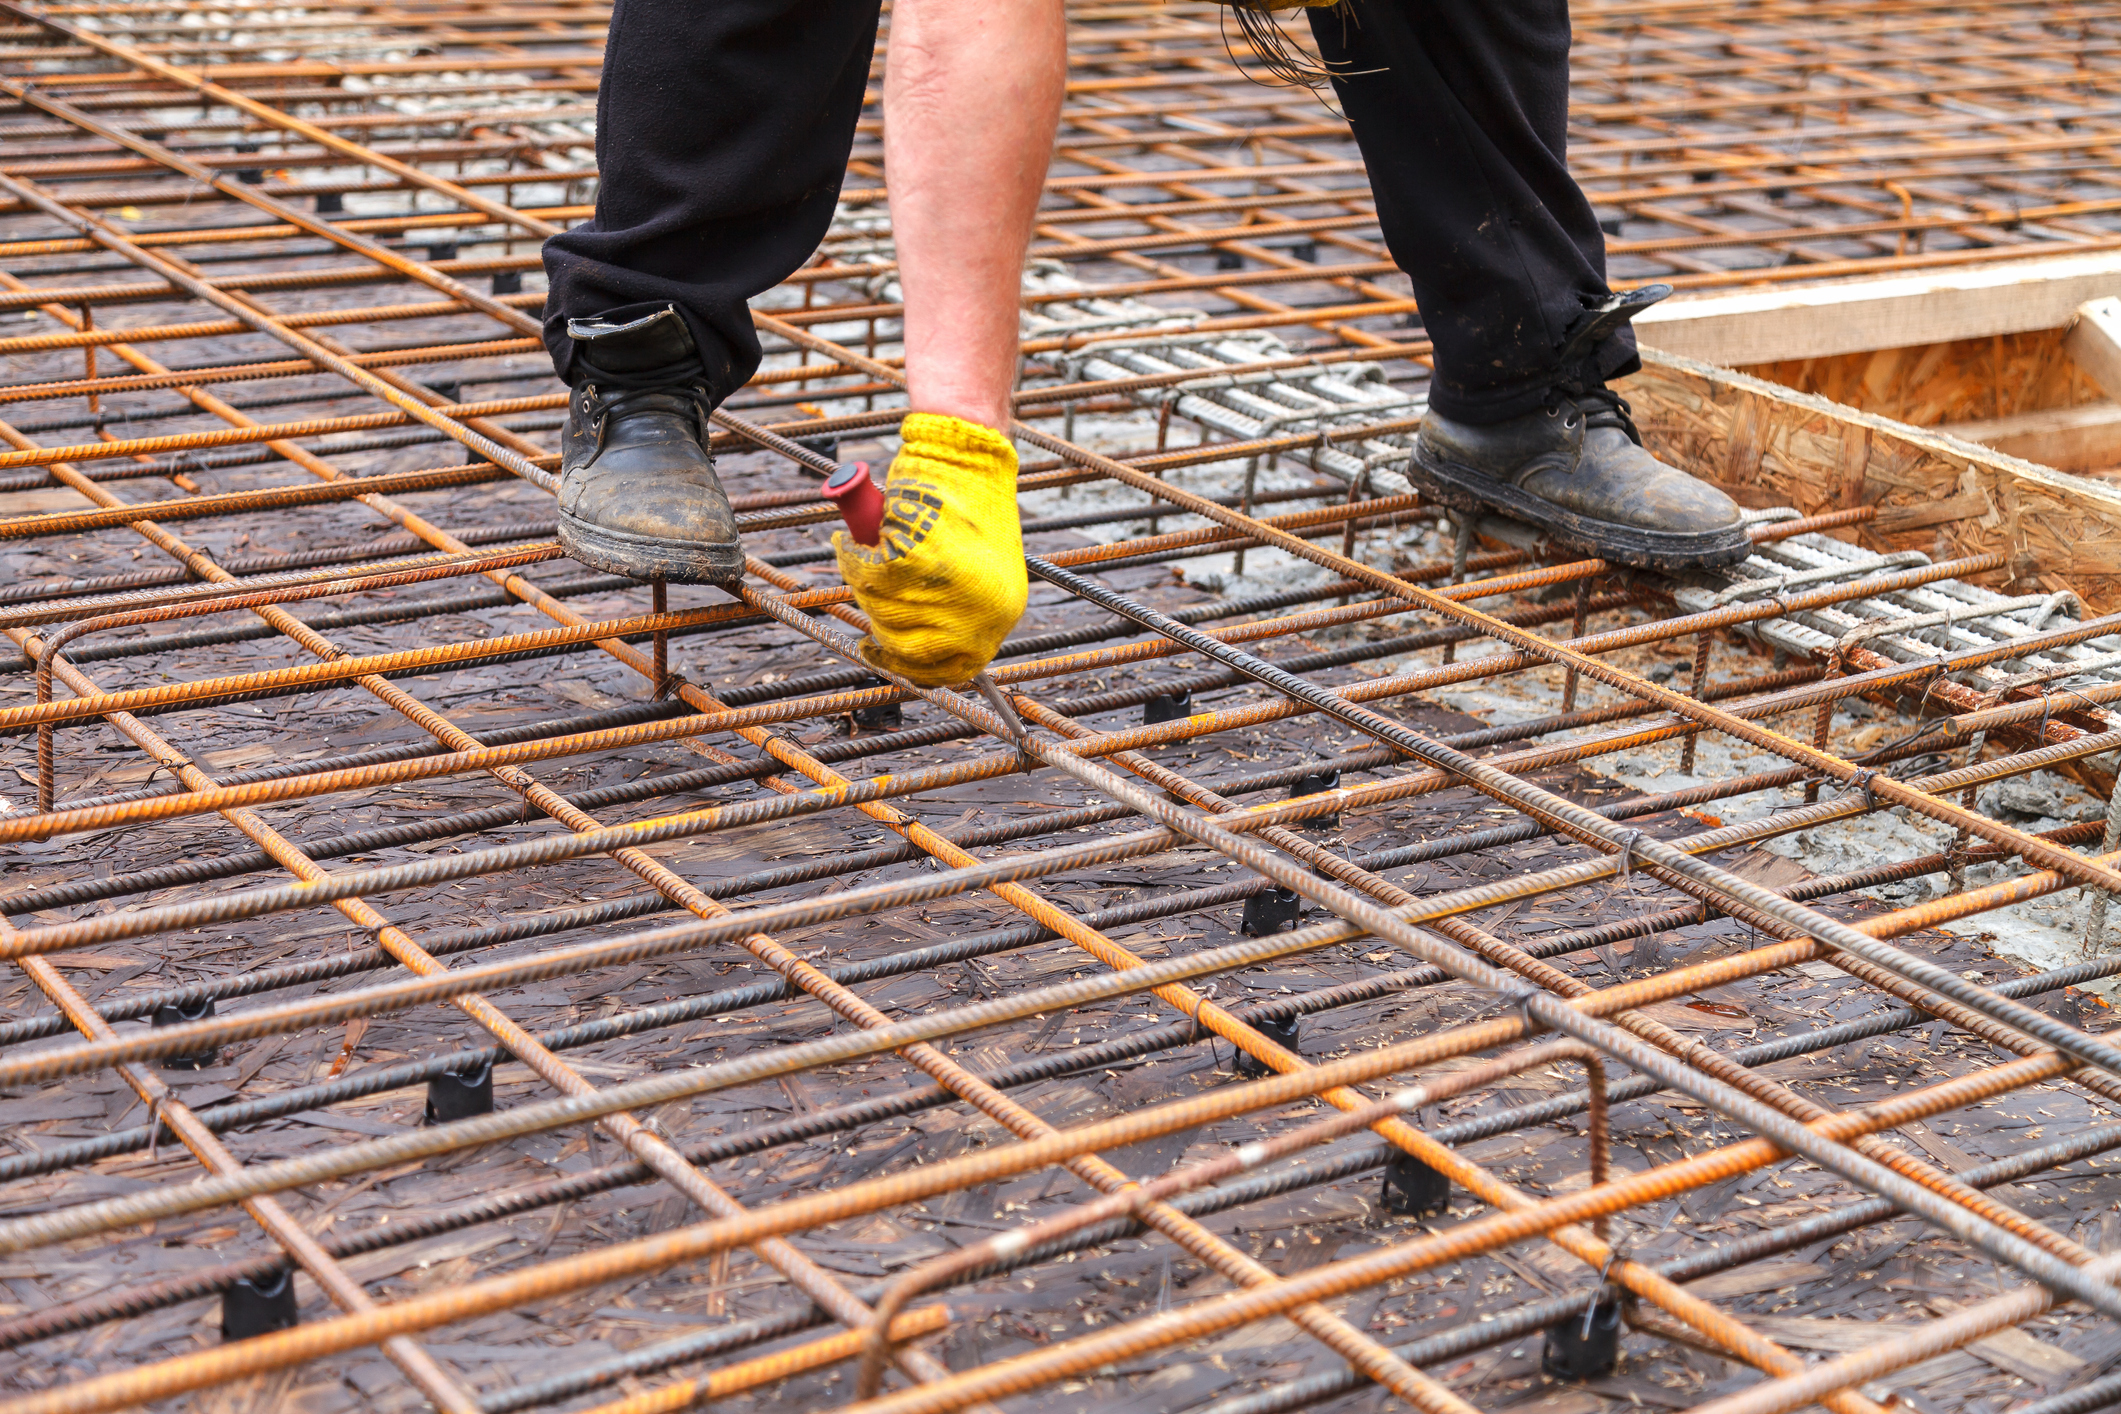 Construction worker ties steel reinforcing bars with wire to strengthen the foundation.